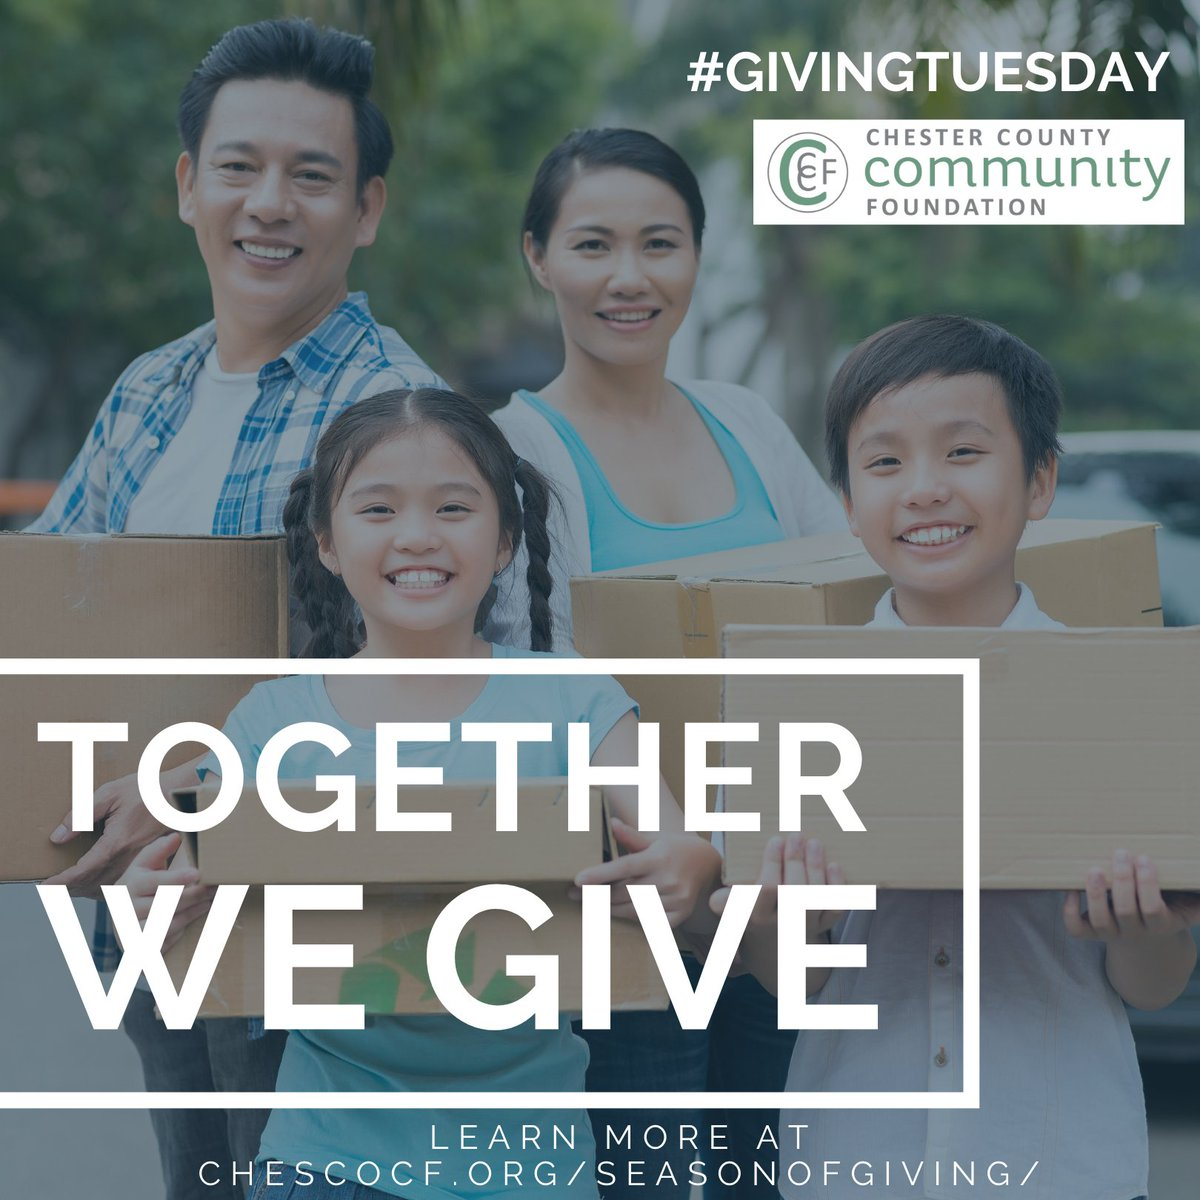 Tomorrow is #GivingTuesday! GivingTuesday is a global generosity movement unleashing the power of people and organizations to transform their communities and the world. How can you get involved? Go to https://t.co/jR0EkHcmxz today.   #seasonofgiving #giveyourlegacy #chesco #CCCF https://t.co/RtocLWDO43